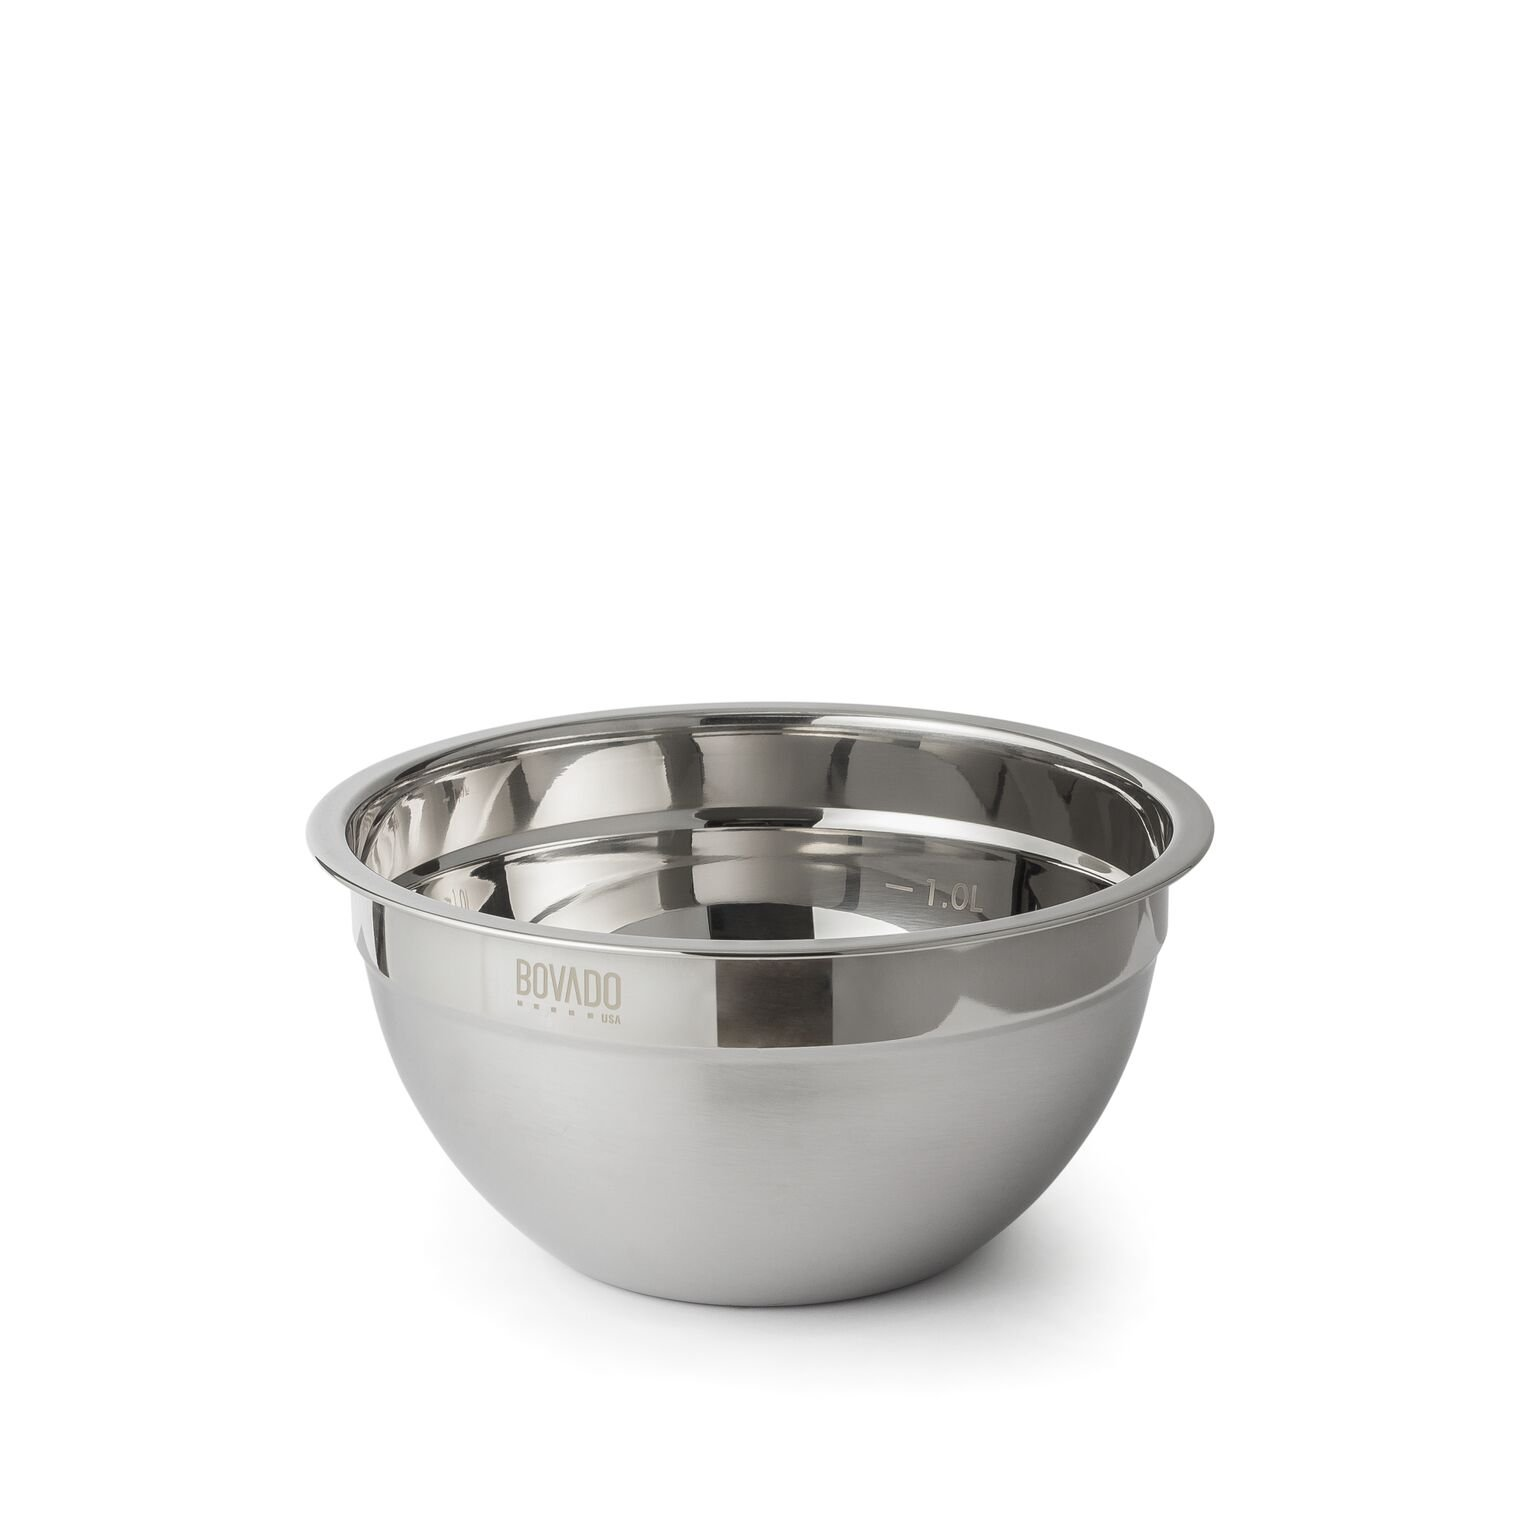 Stainless Steel Mixing Bowl - 2qt - Flat Bottom Non Slip Base, Retains Temperature, Dishwasher Safe - By Bovado USA by Bovado USA